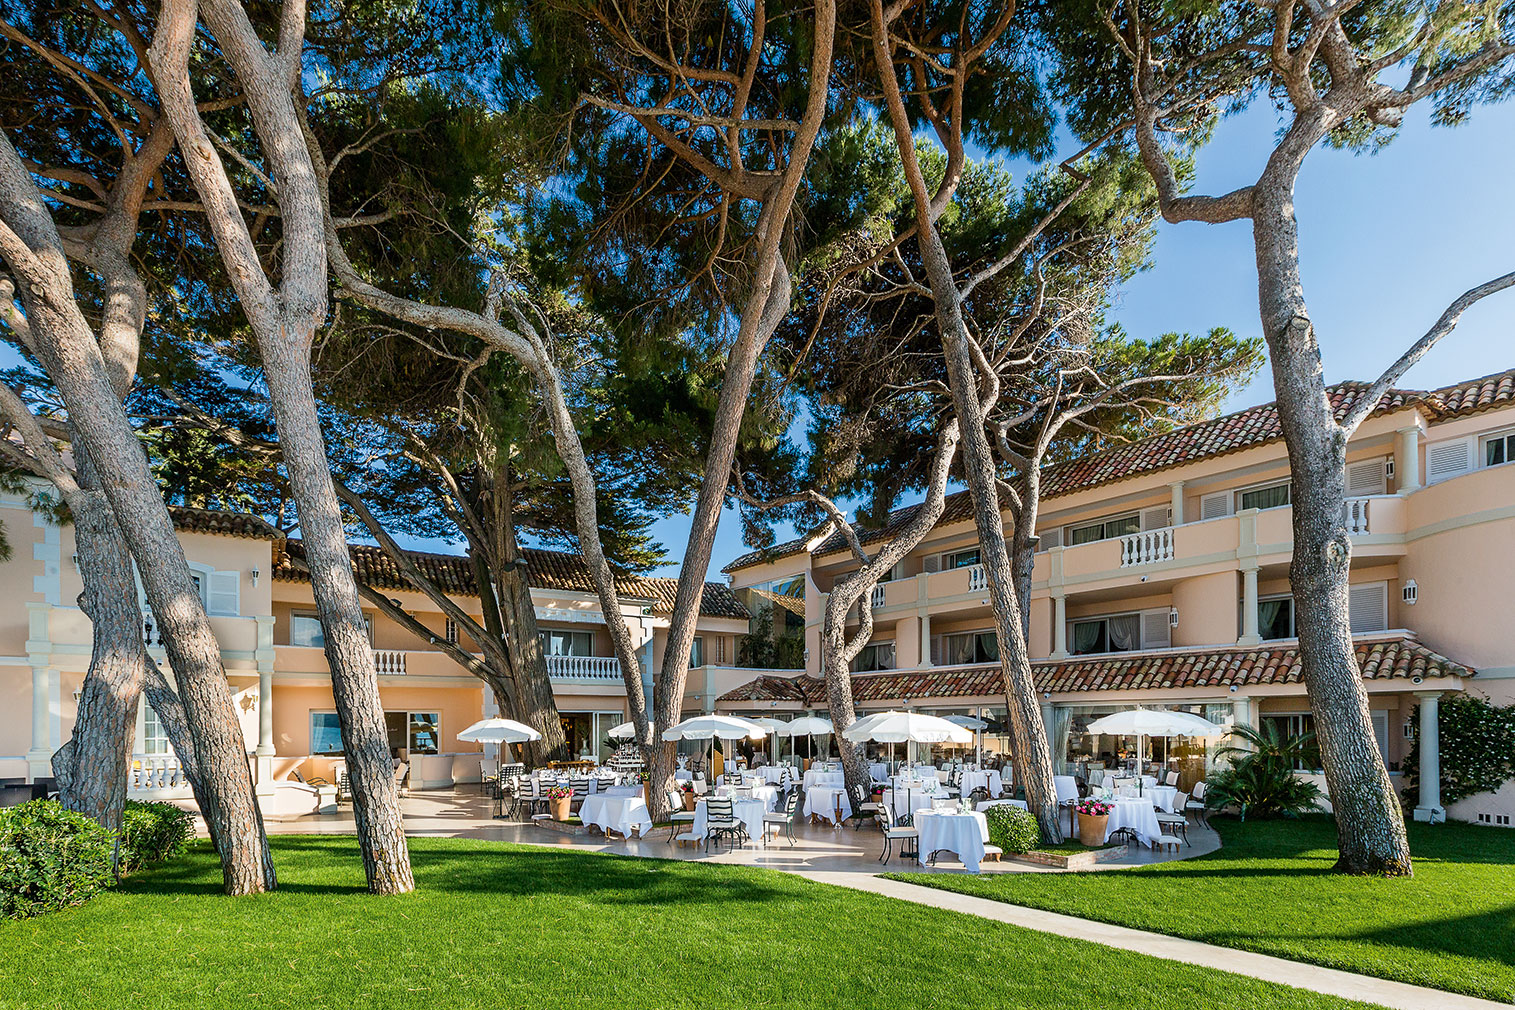 Cheval Blanc is a French Riviera hideaway with classic bones and modernist interiors